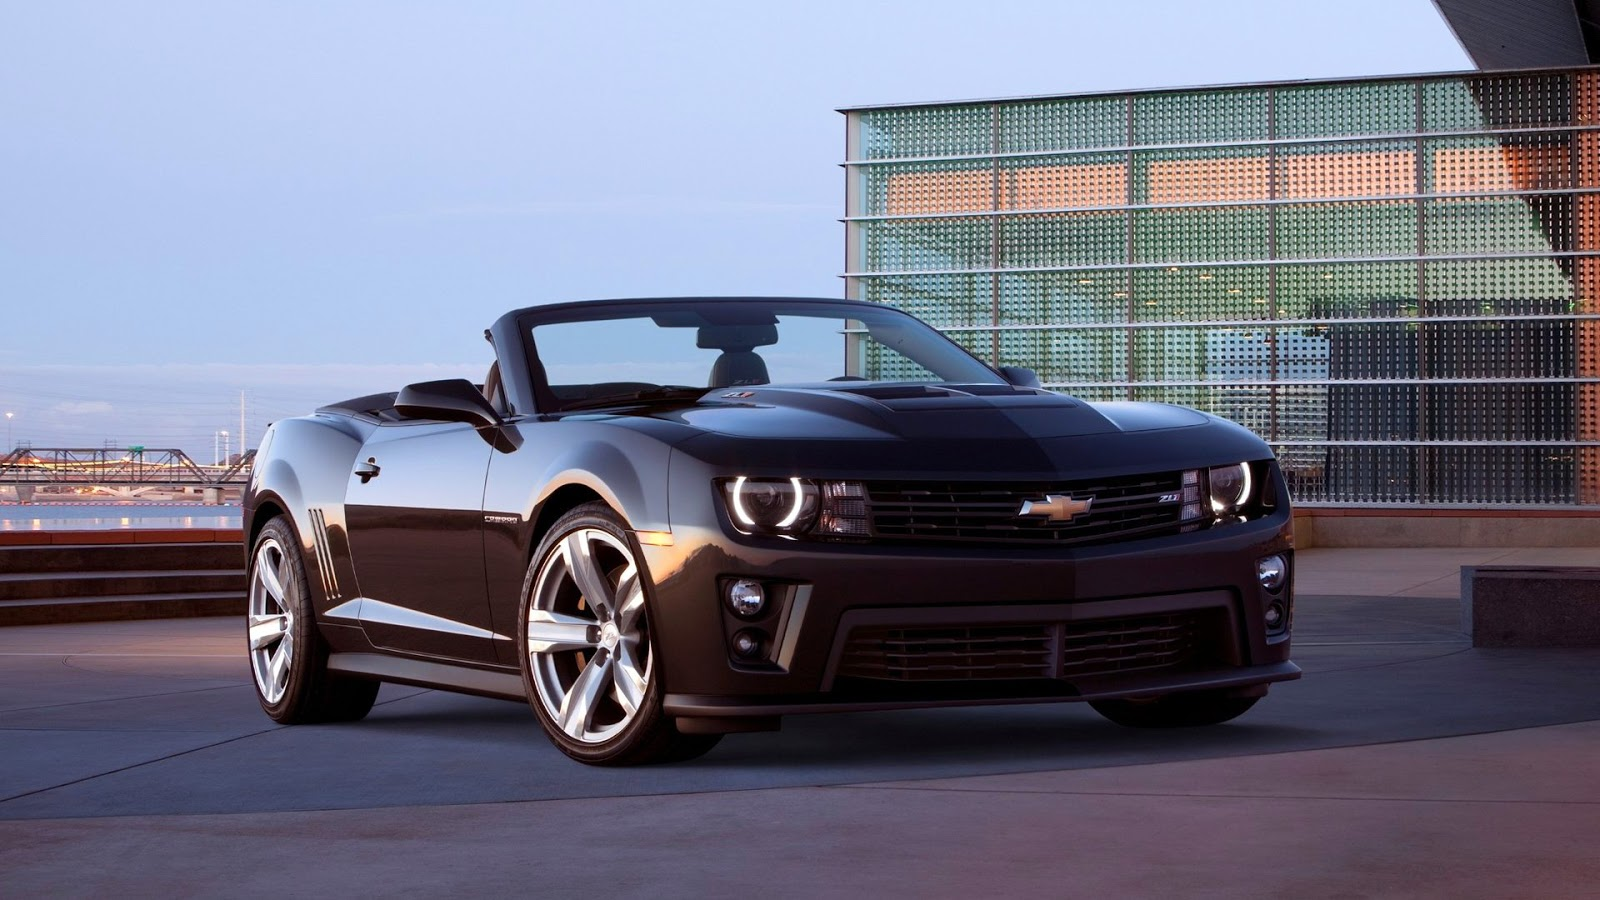 Camaro Wallpapers Full Hd Wallpaper Search Wallpapers